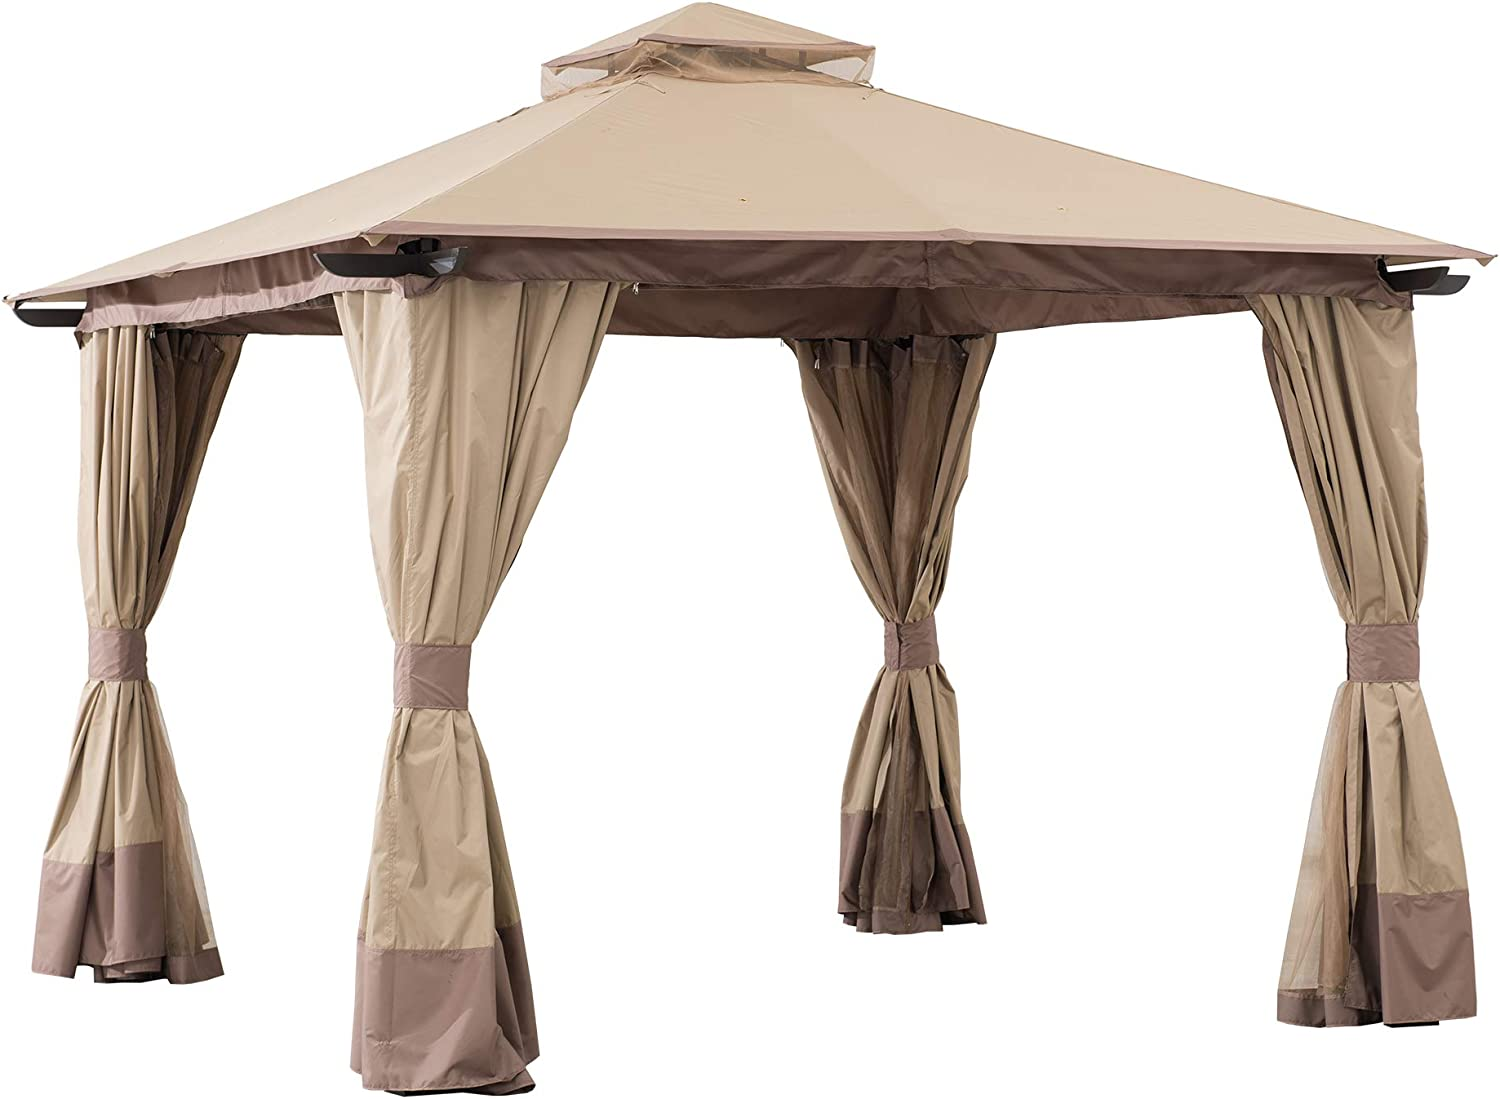 Sunjoy A101011700 Cristina 12x12 ft. Steel Gazebo with 2-Tier Hip Roof, Tan and Brown